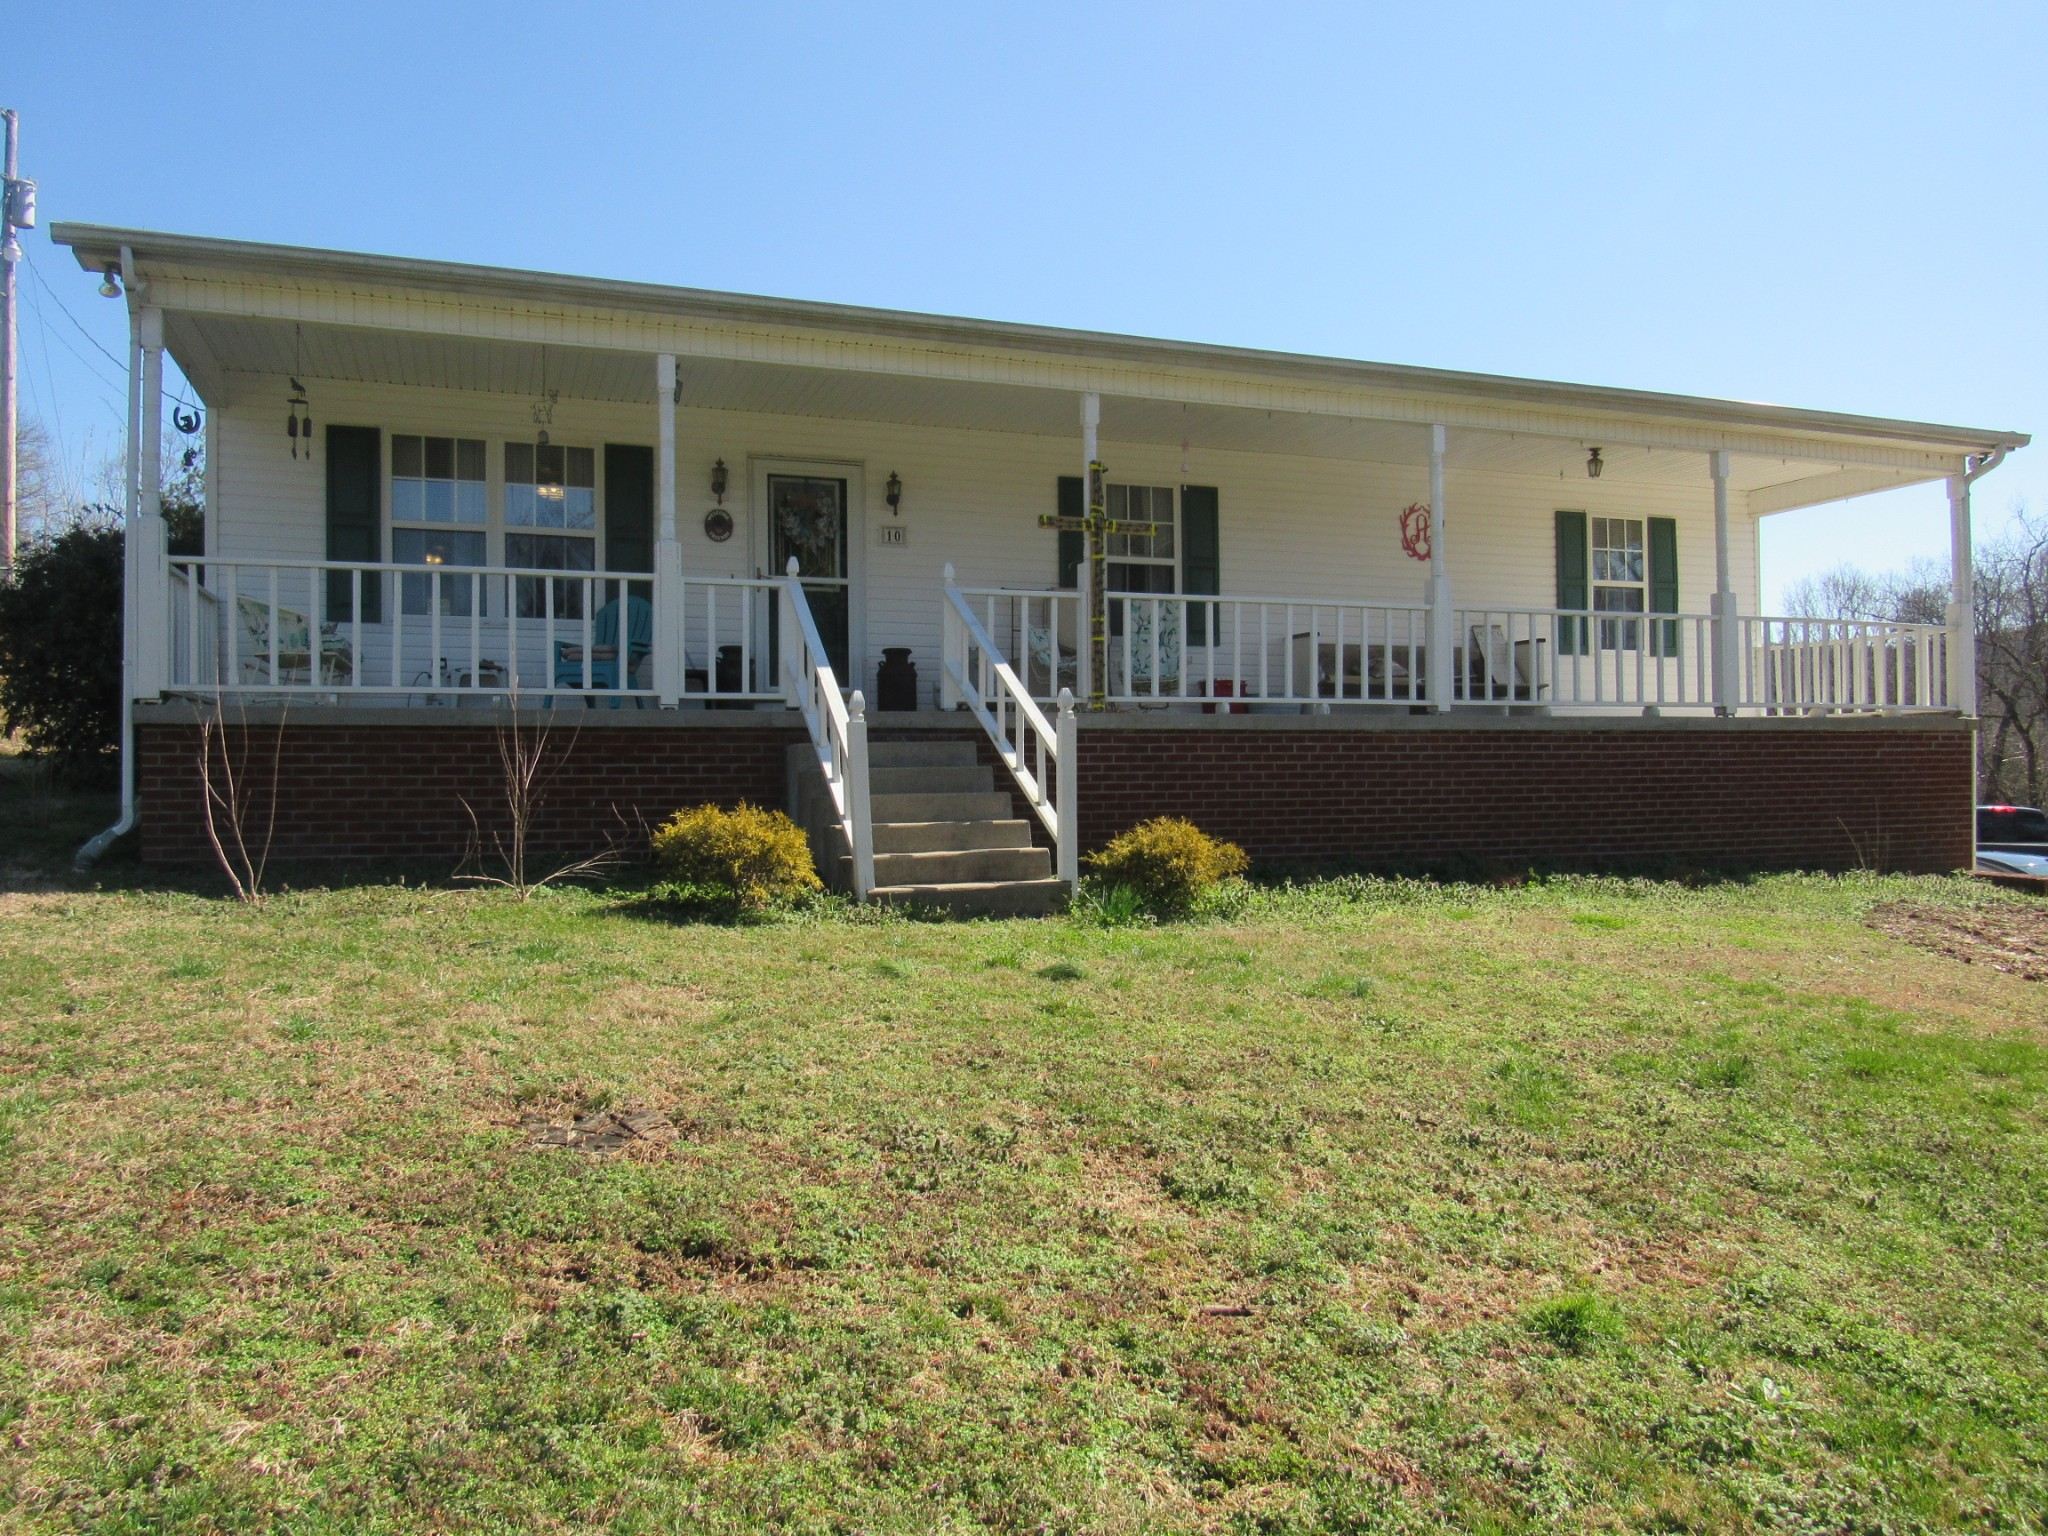 10 Lollar Ln, Brush Creek, TN 38547 - Brush Creek, TN real estate listing